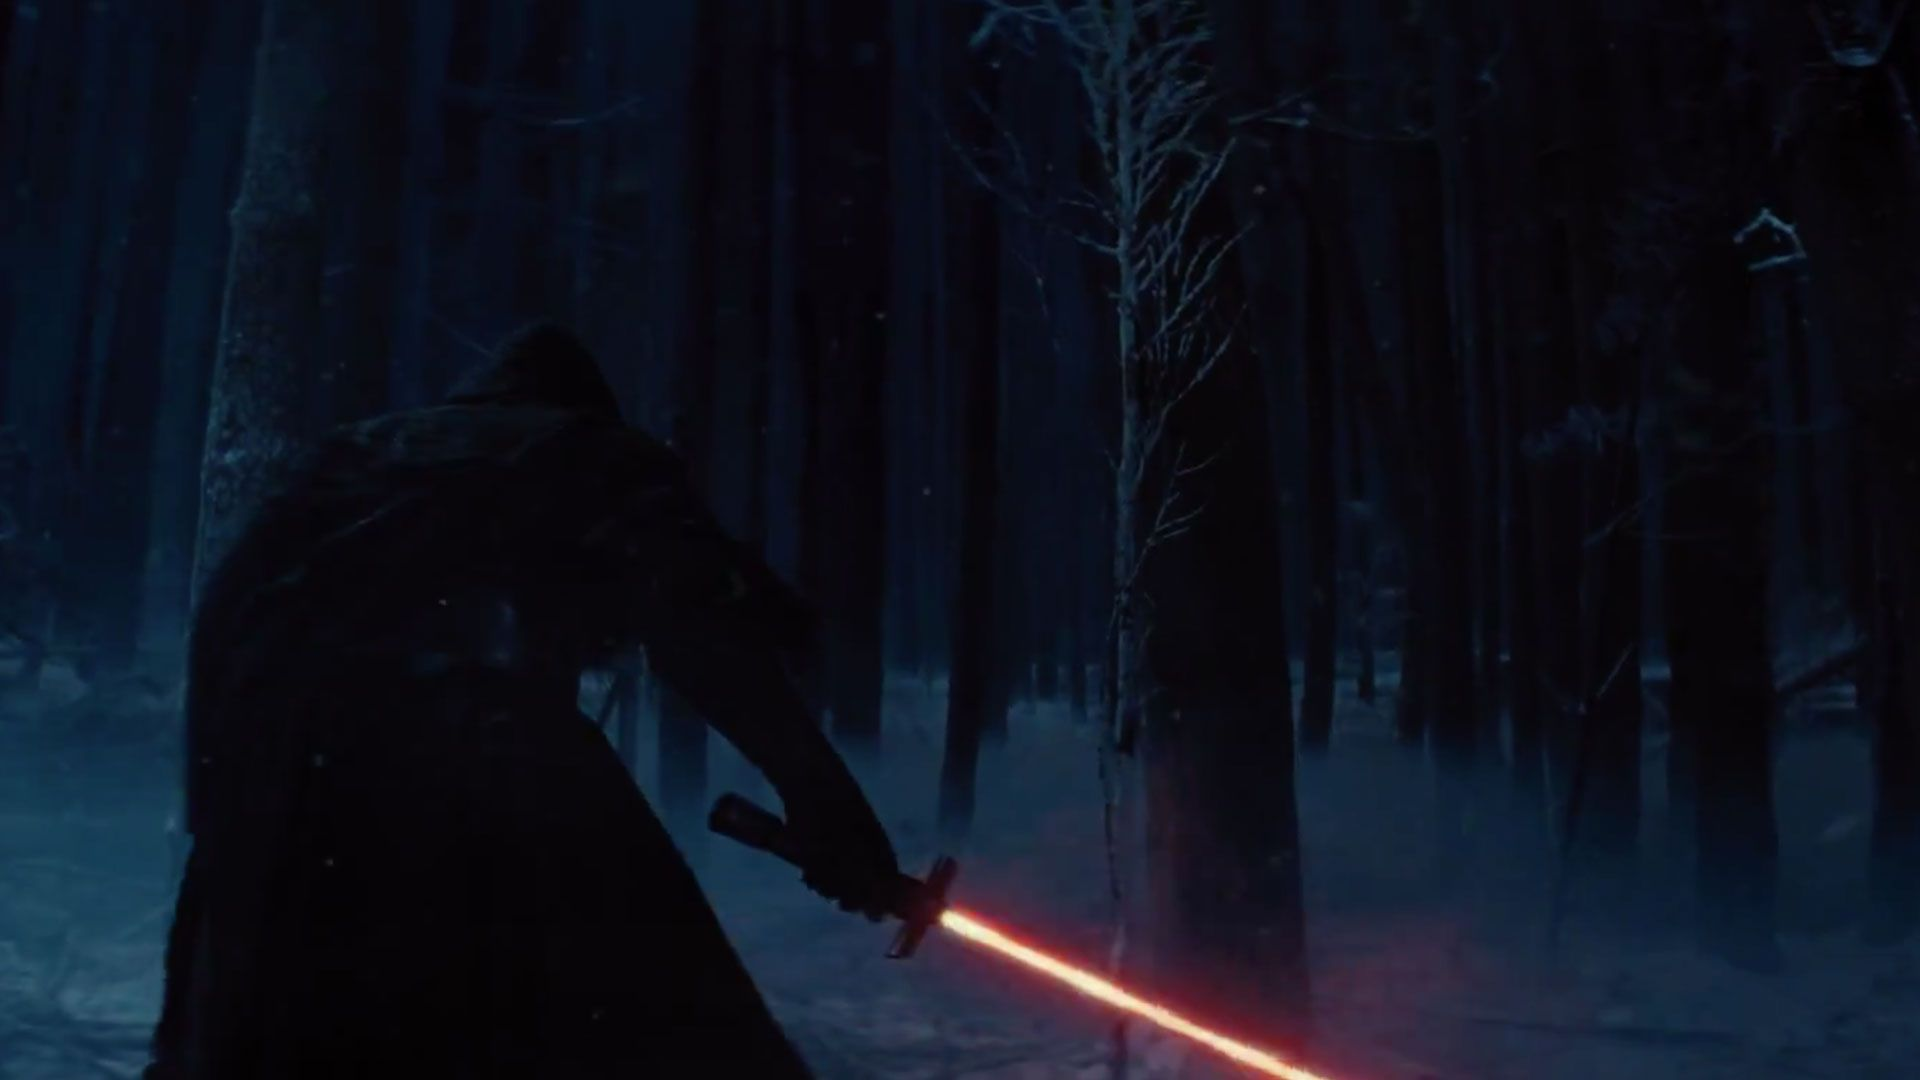 fice Star Wars The Force Awakens Track For Huge Possibly